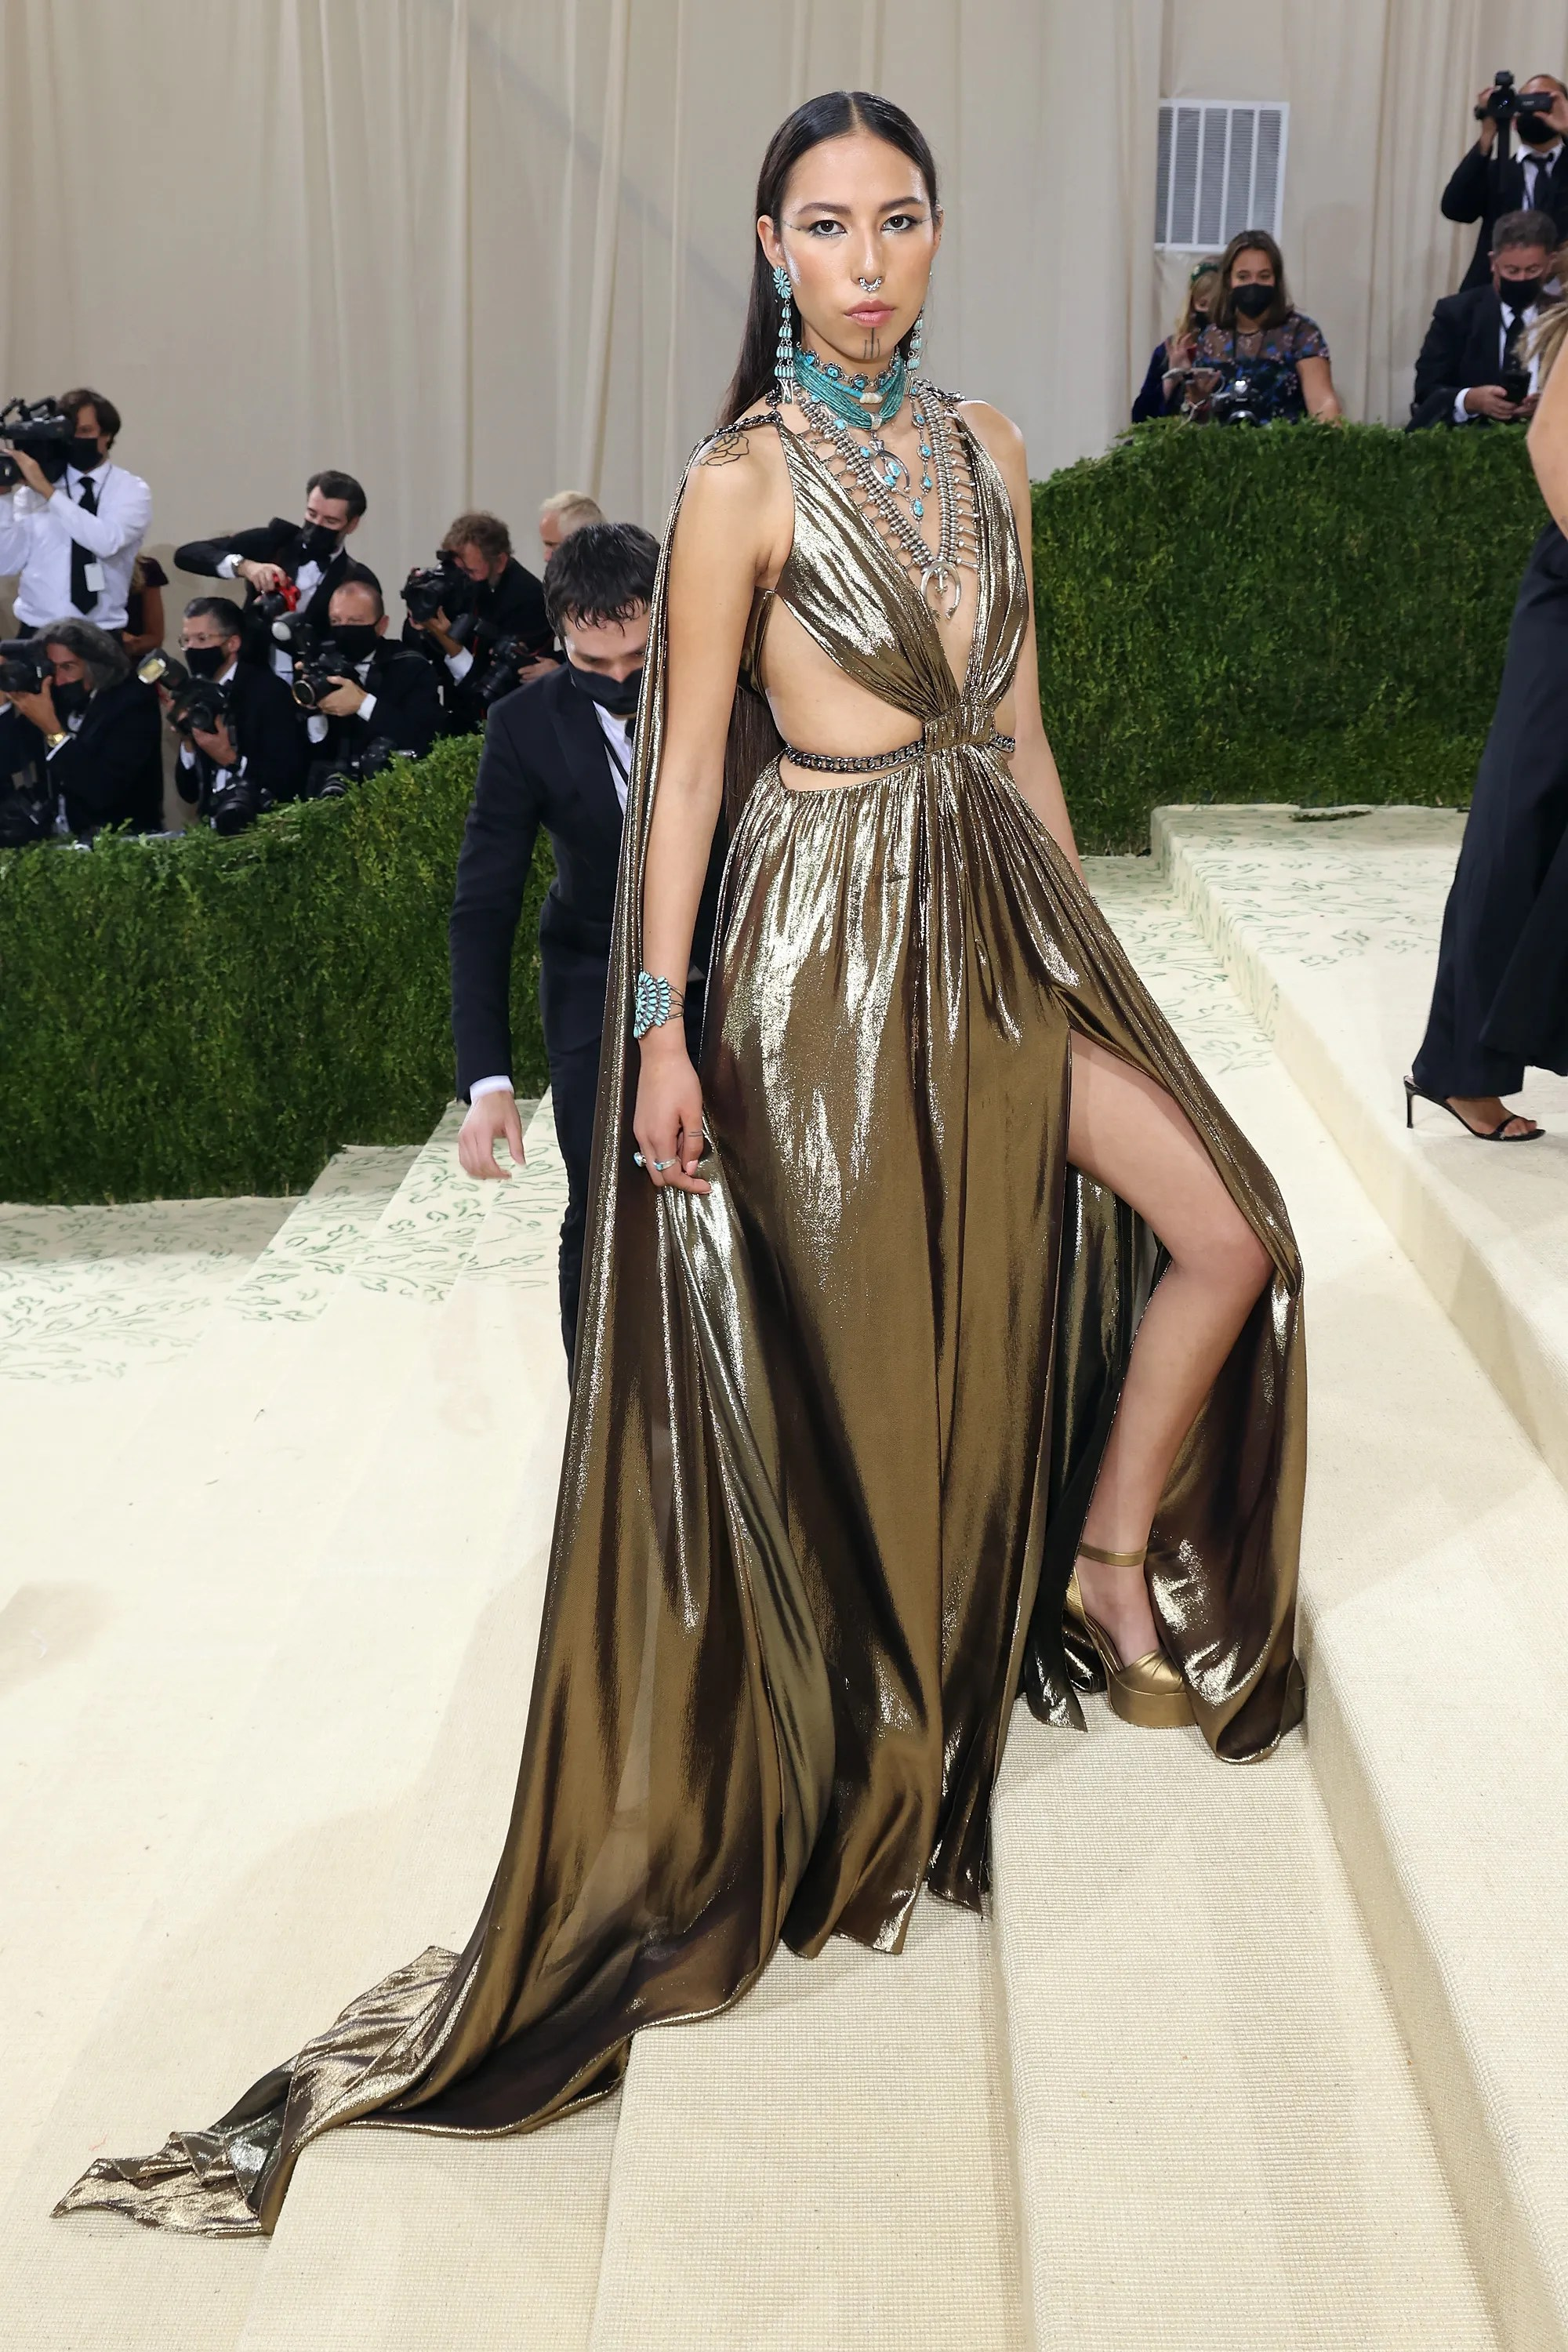 """Quannah Chasinghorse attends 2021 Met Gala """"In America: a fashion lexicon"""" at the Metropolitan Museum of Art on September 13, 2021 in New York City."""